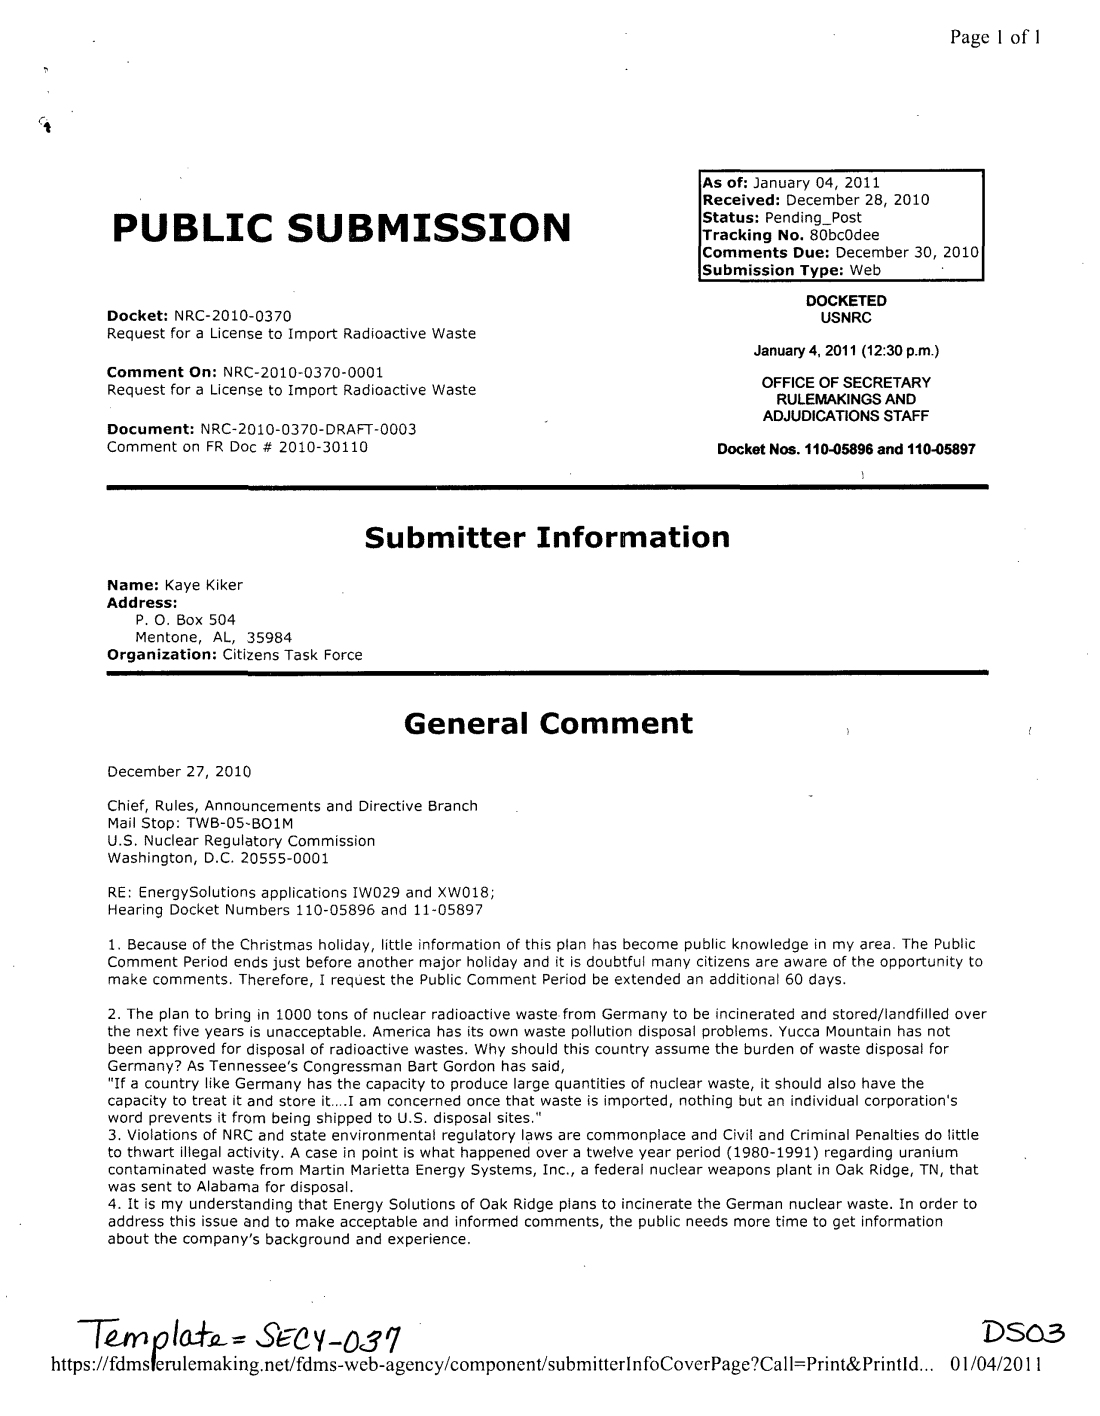 2010/12/28-Letter of Kaye Kiker, Opposing Energy Solutions of Oa